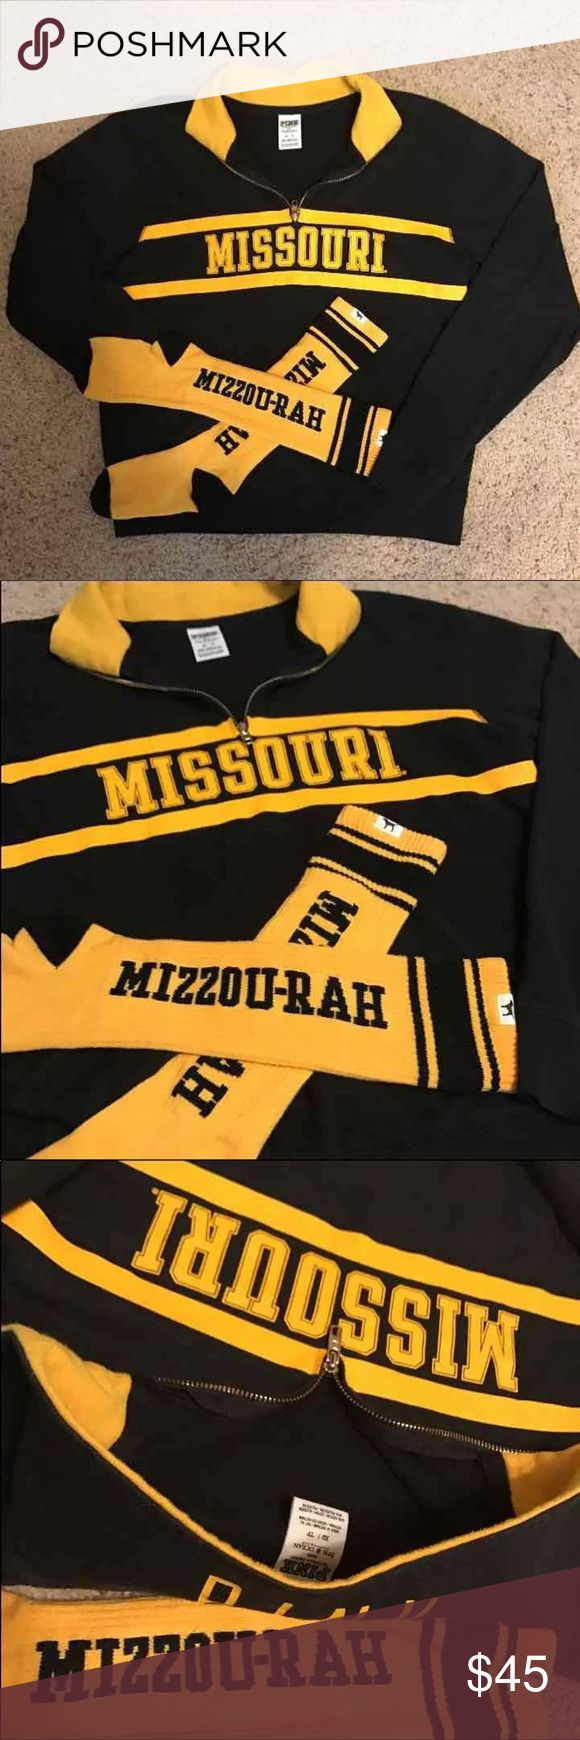 """Victoria's Secret PINK Jacket And Socks Bundle University of Missouri """"Tigers""""  Victoria's Secret PINK Collegiate Collection bundle  Lot of 1 Half Zip Jacket with Front Pocket  And pair of Mizzou-Rah! Knee High Socks Jacket is In Excellent Used Condition!  And Socks are in Good Used Condition. Size XS  Make an Offer! All Reasonable Offers Accepted! PINK Victoria's Secret Tops Sweatshirts & Hoodies"""